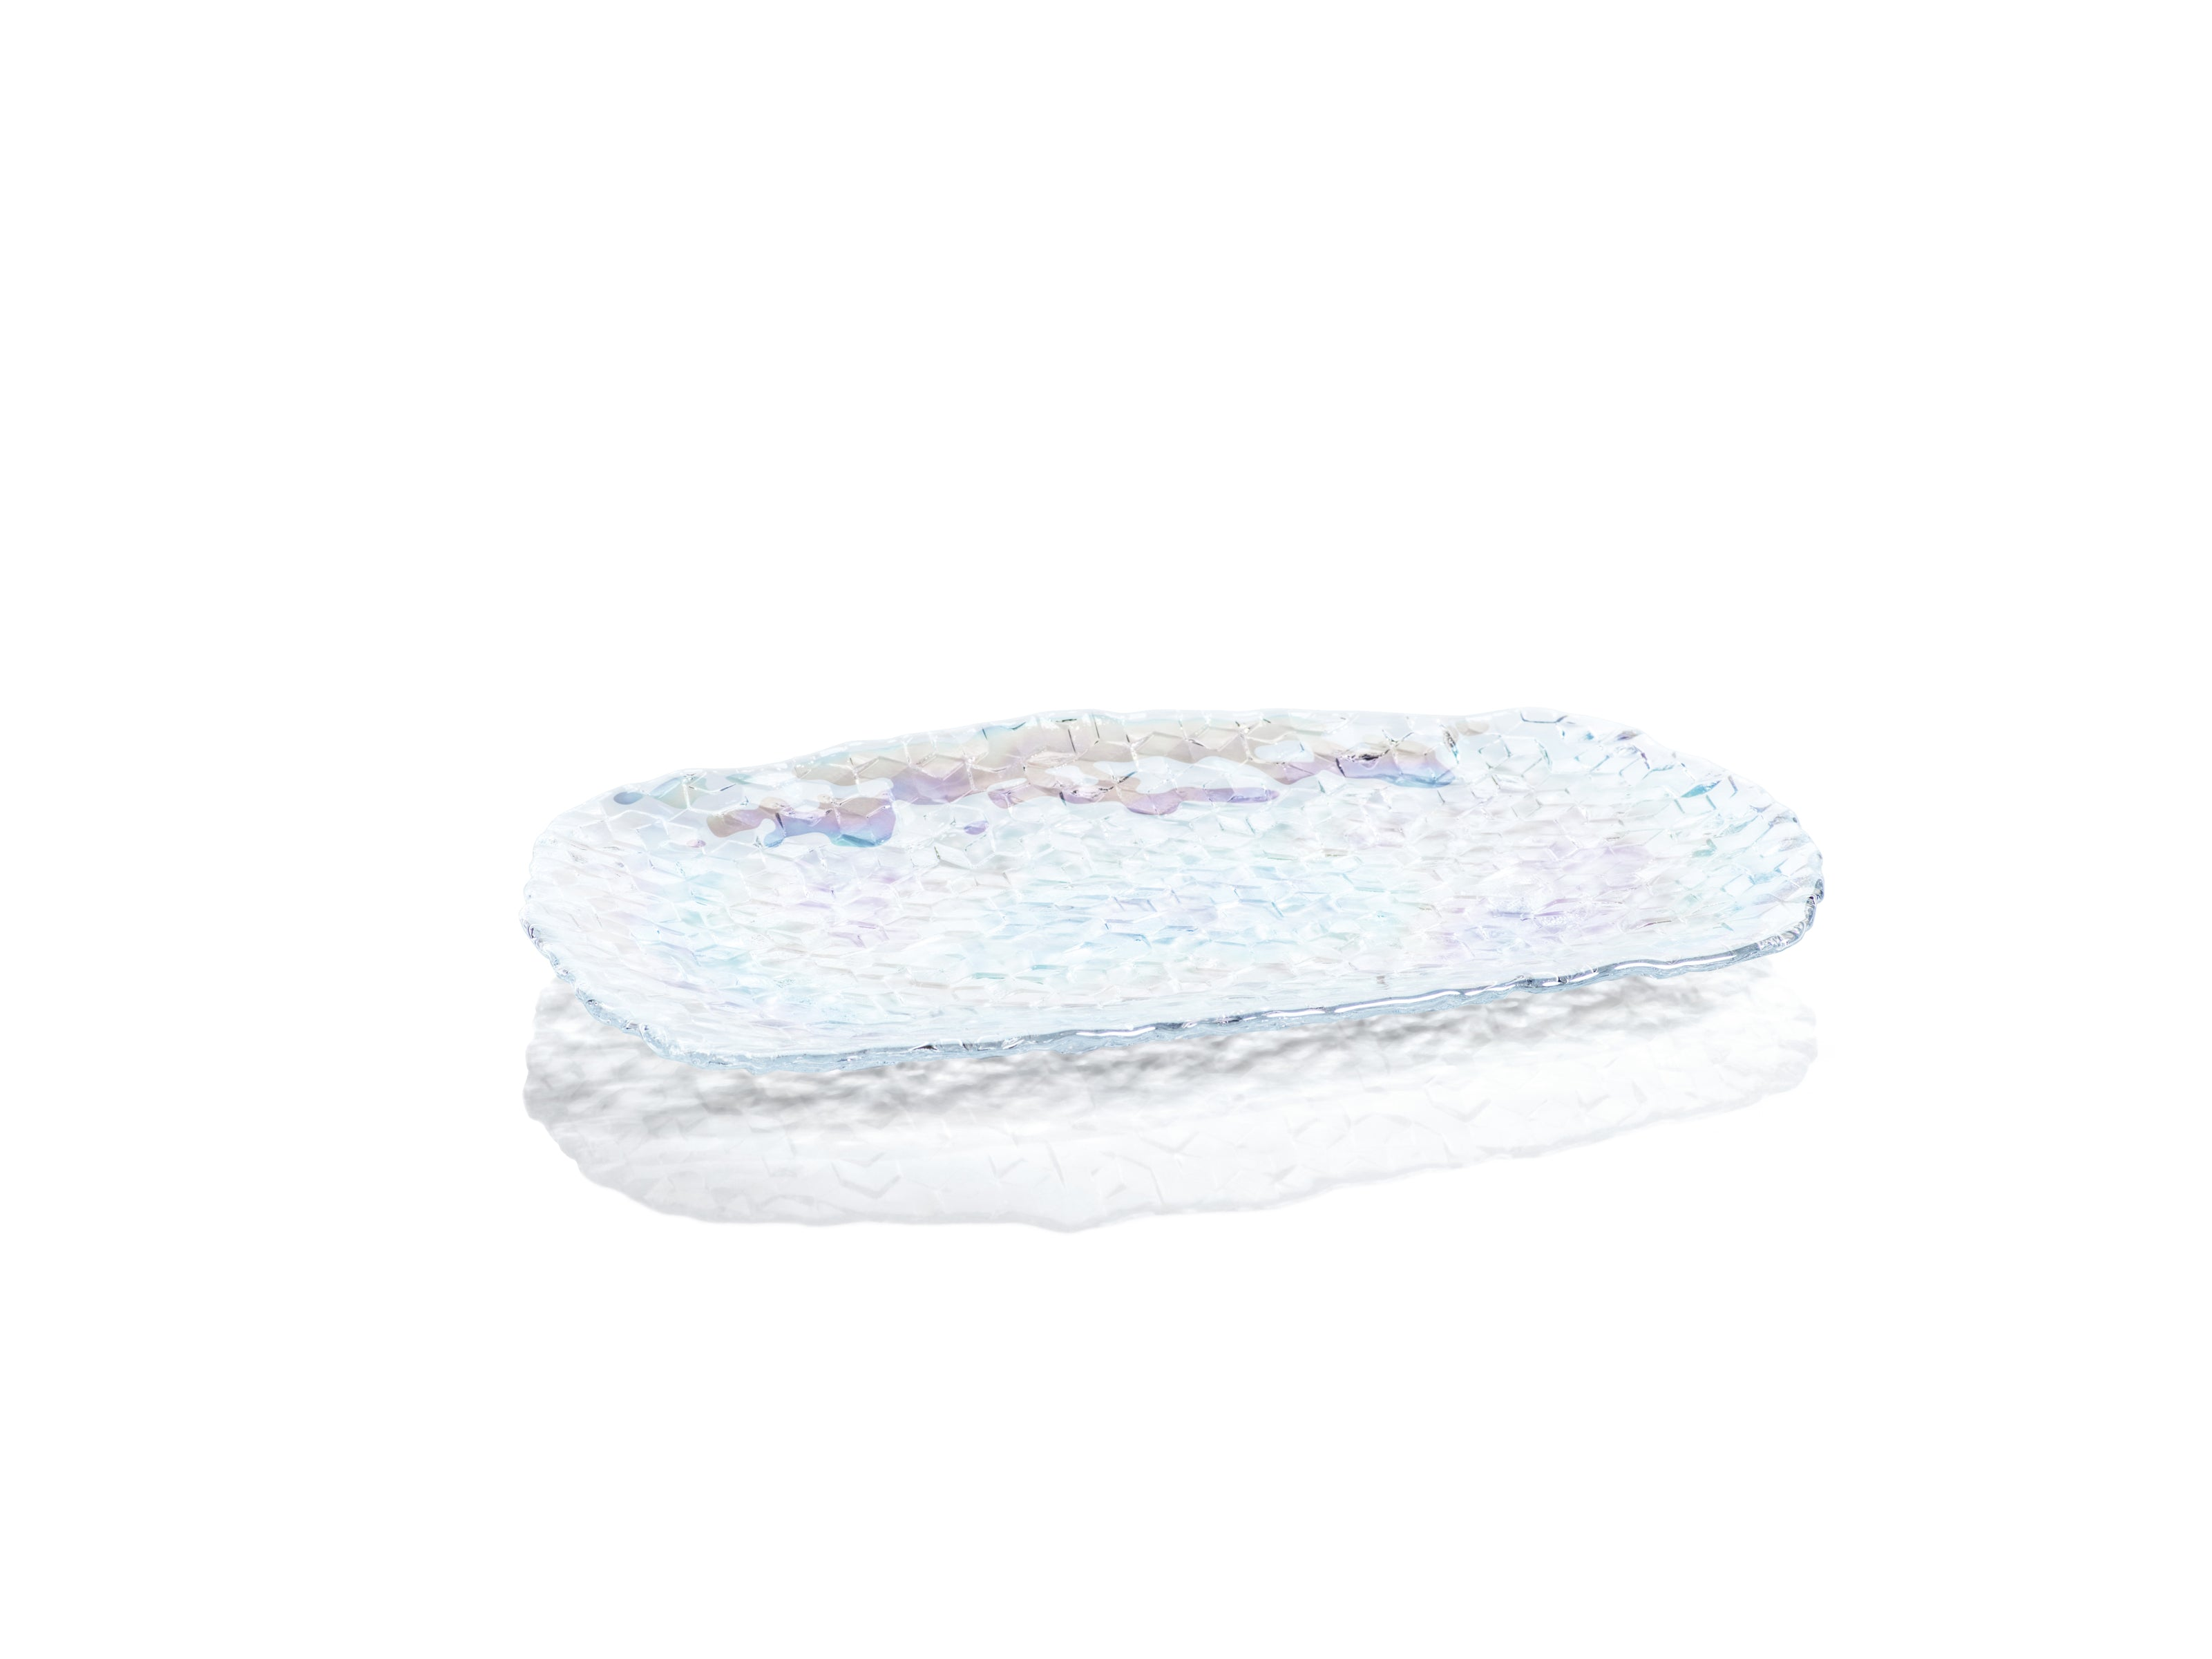 Cubic Iris Luster Serving Tray - CARLYLE AVENUE